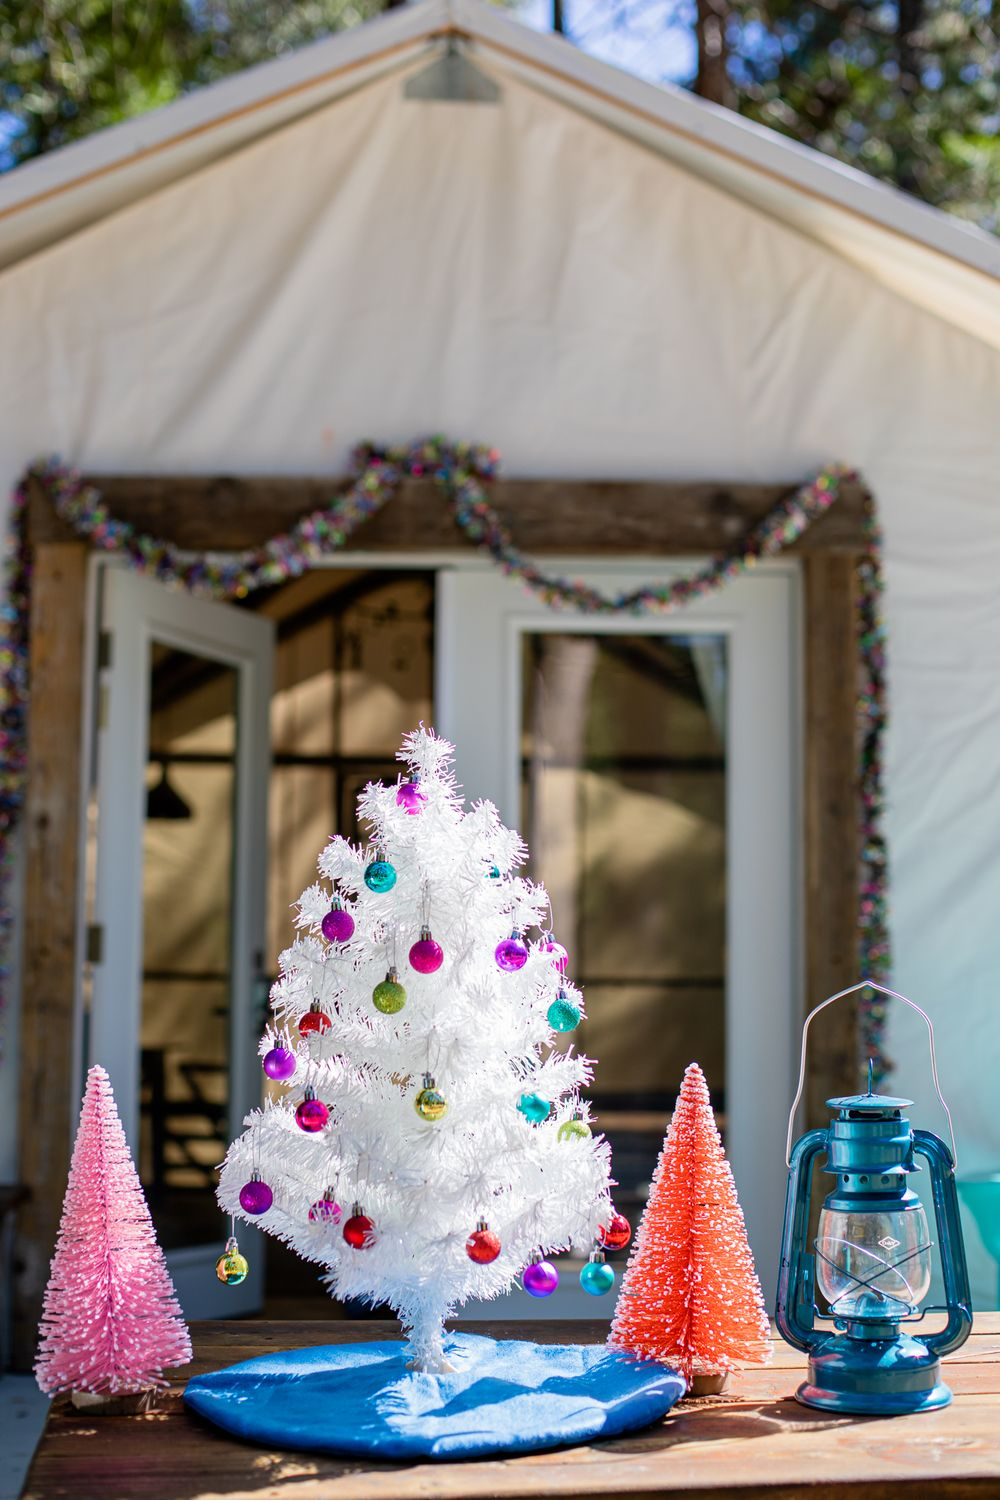 Inn Town Campground Modern Retro Christmas Decorations | Lenkaland Photography